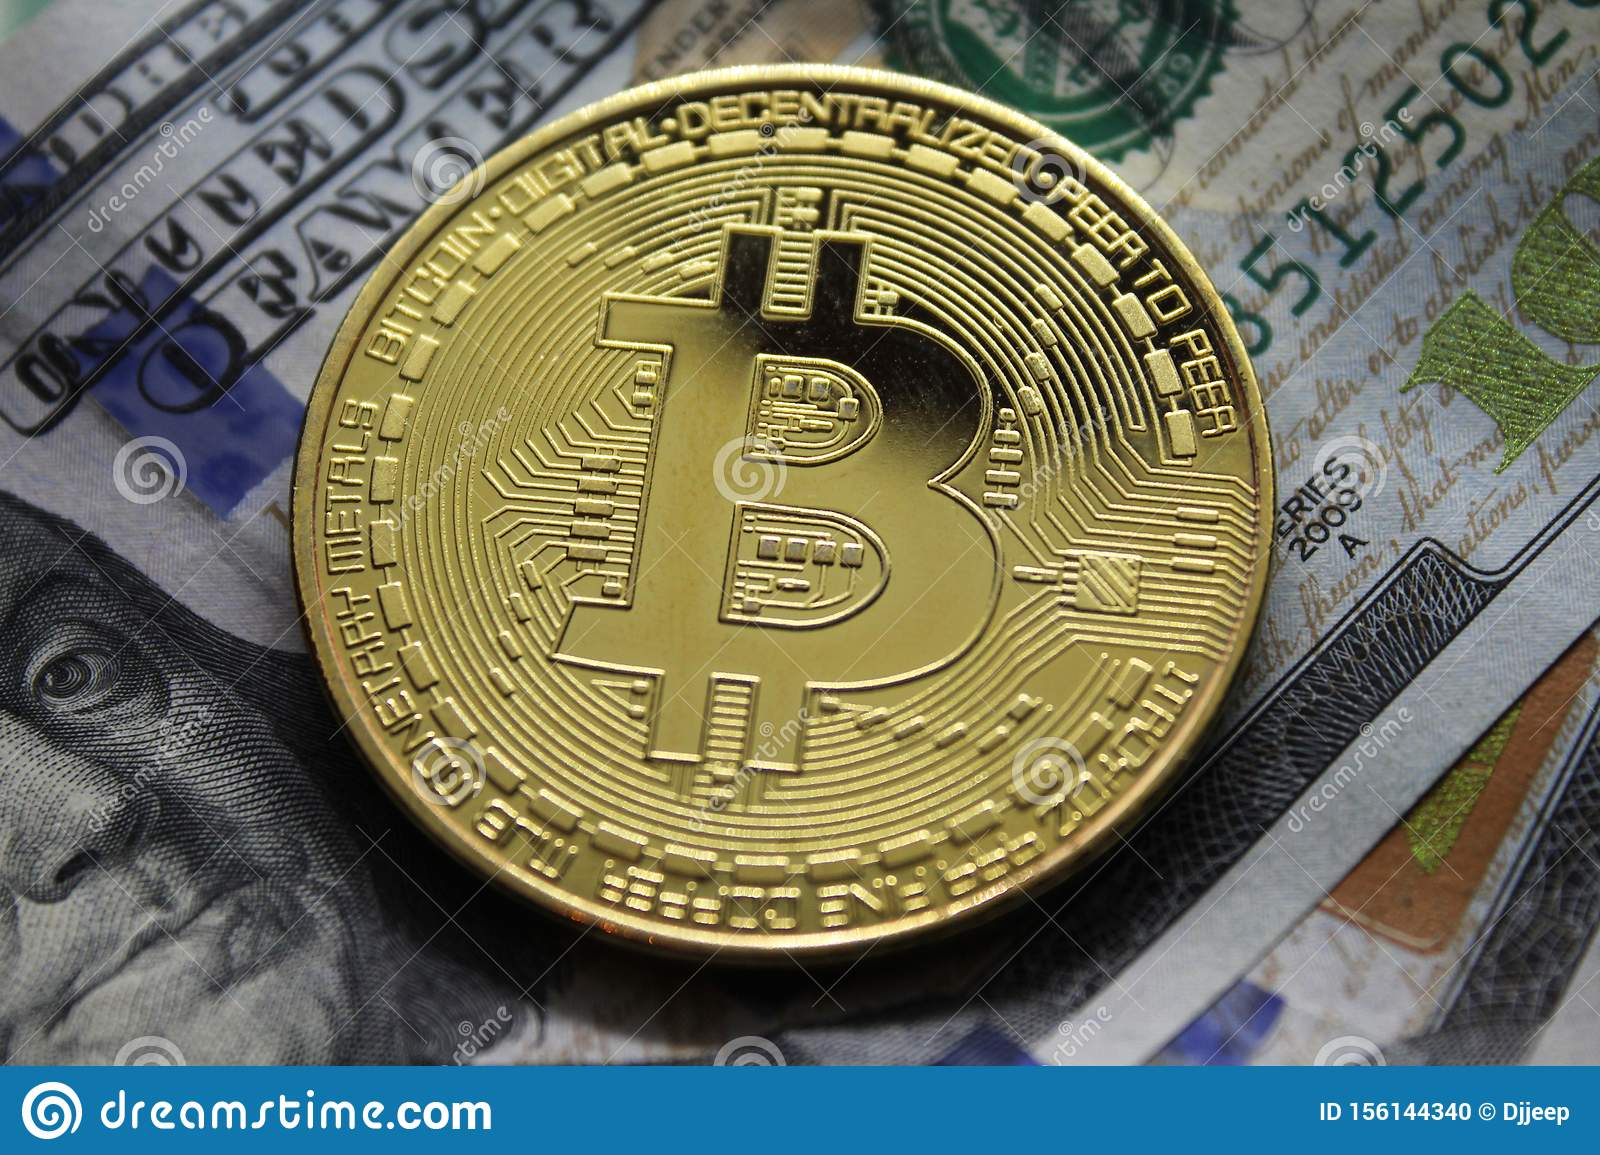 Dime coin crypto currency exchange william hill on line sports betting